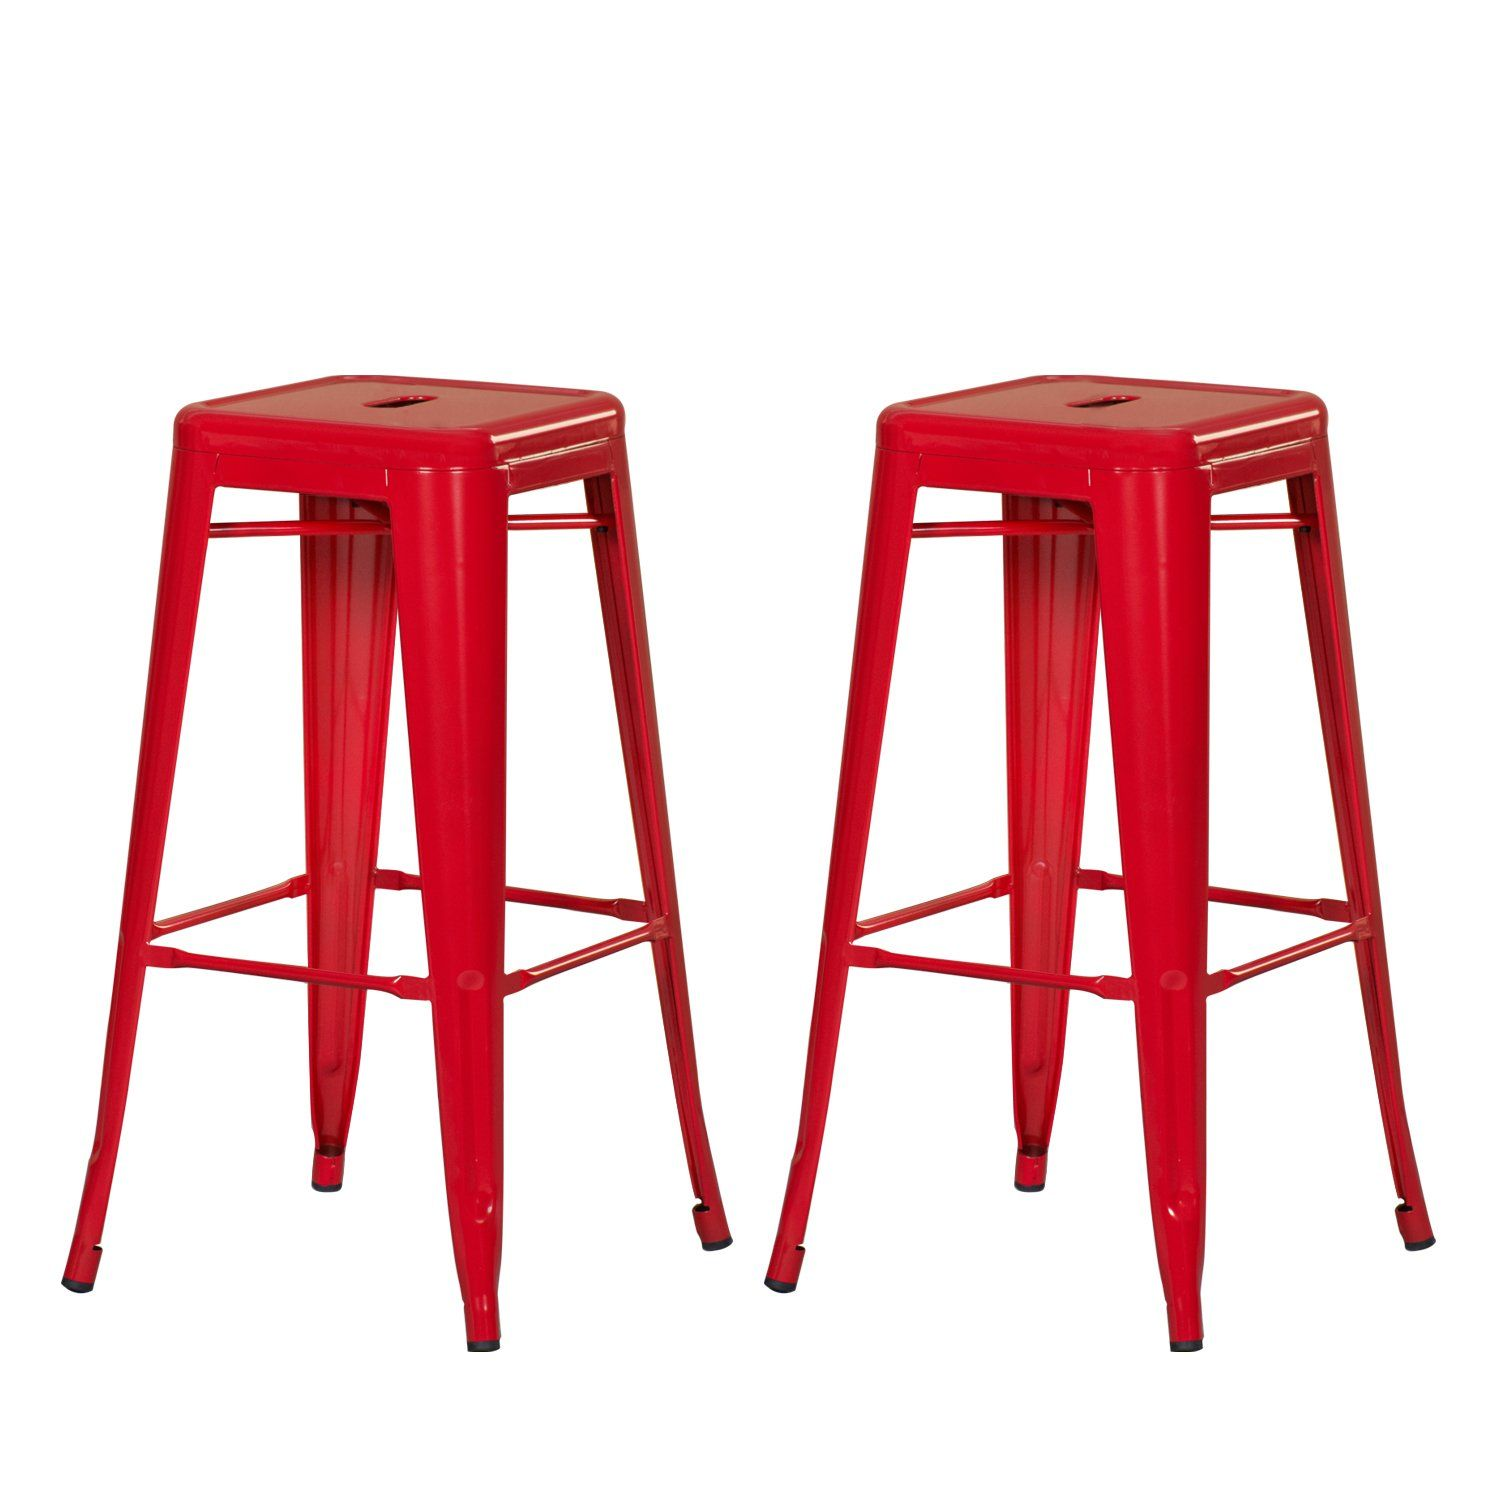 Lyon Fixed Height Industrial Stool Without Back 30 Seat